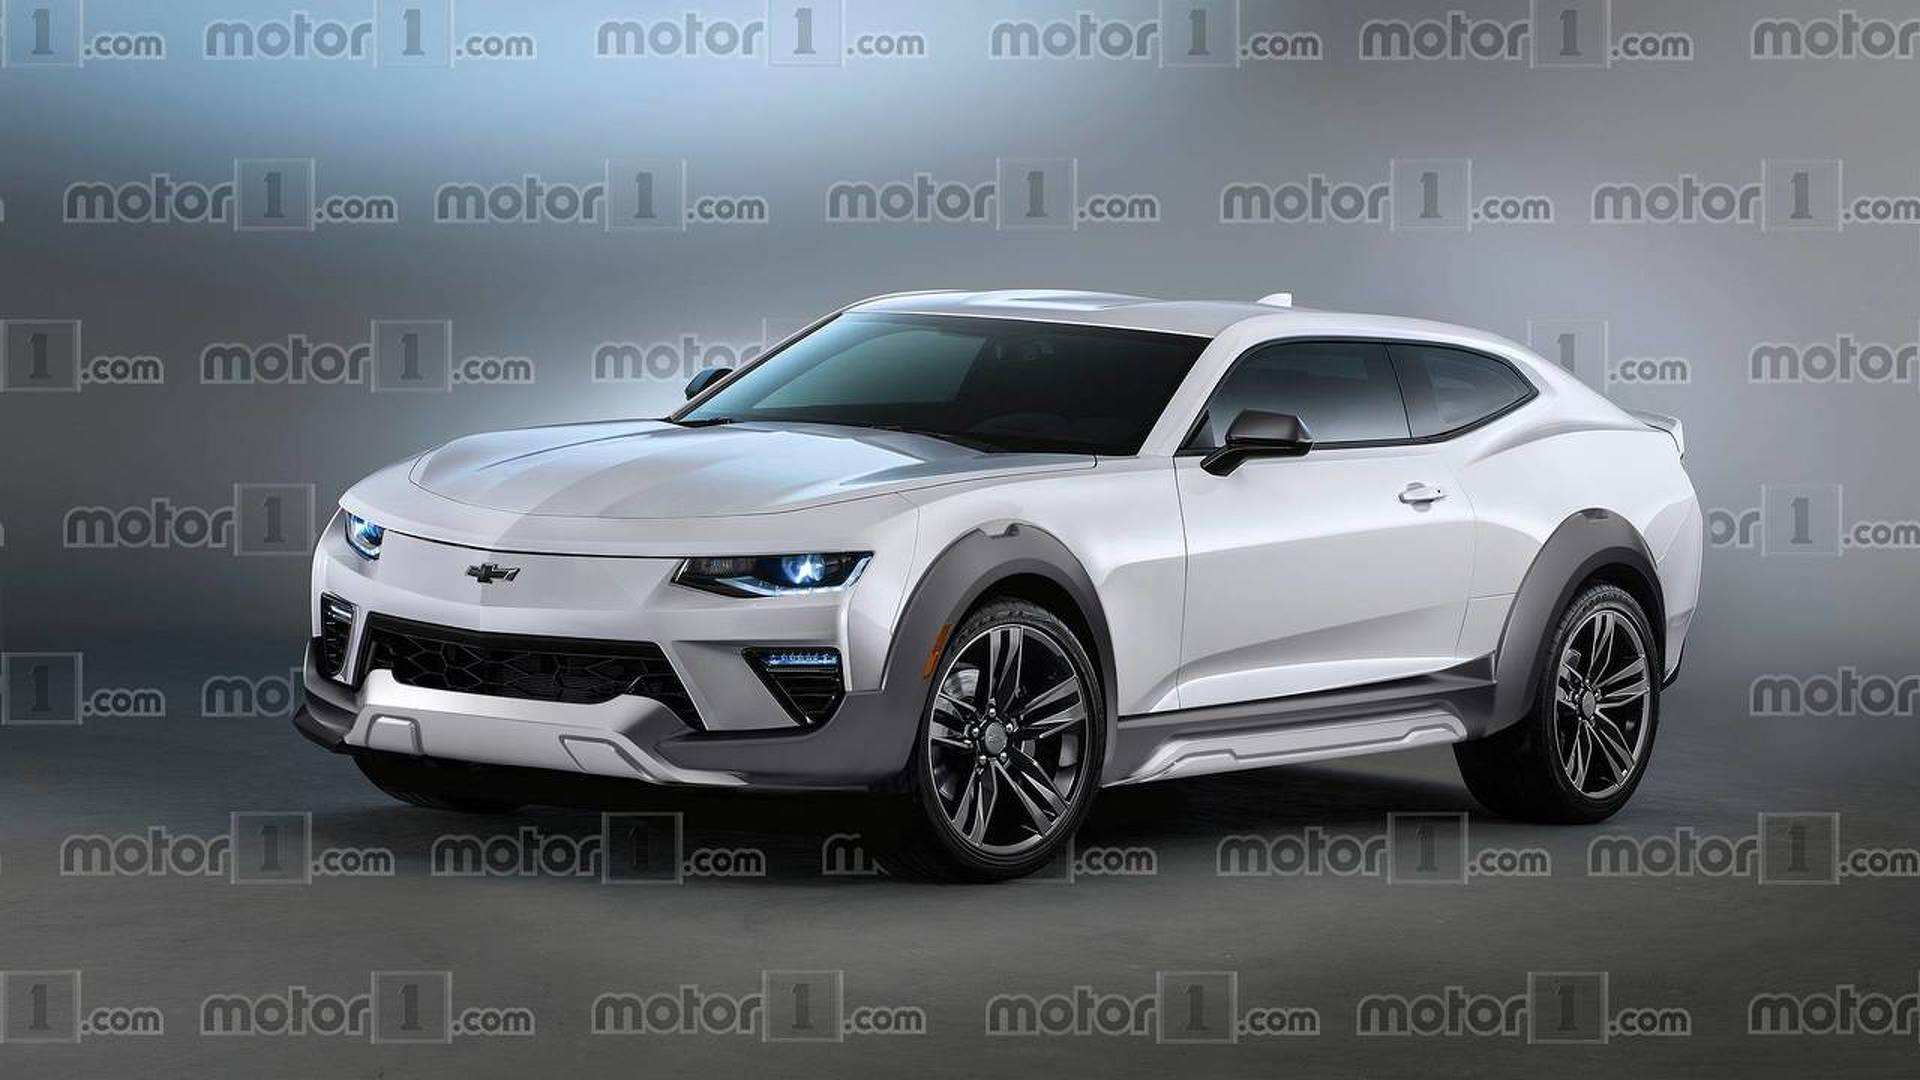 53 The Best Chevrolet Cars For 2020 Exterior And Interior